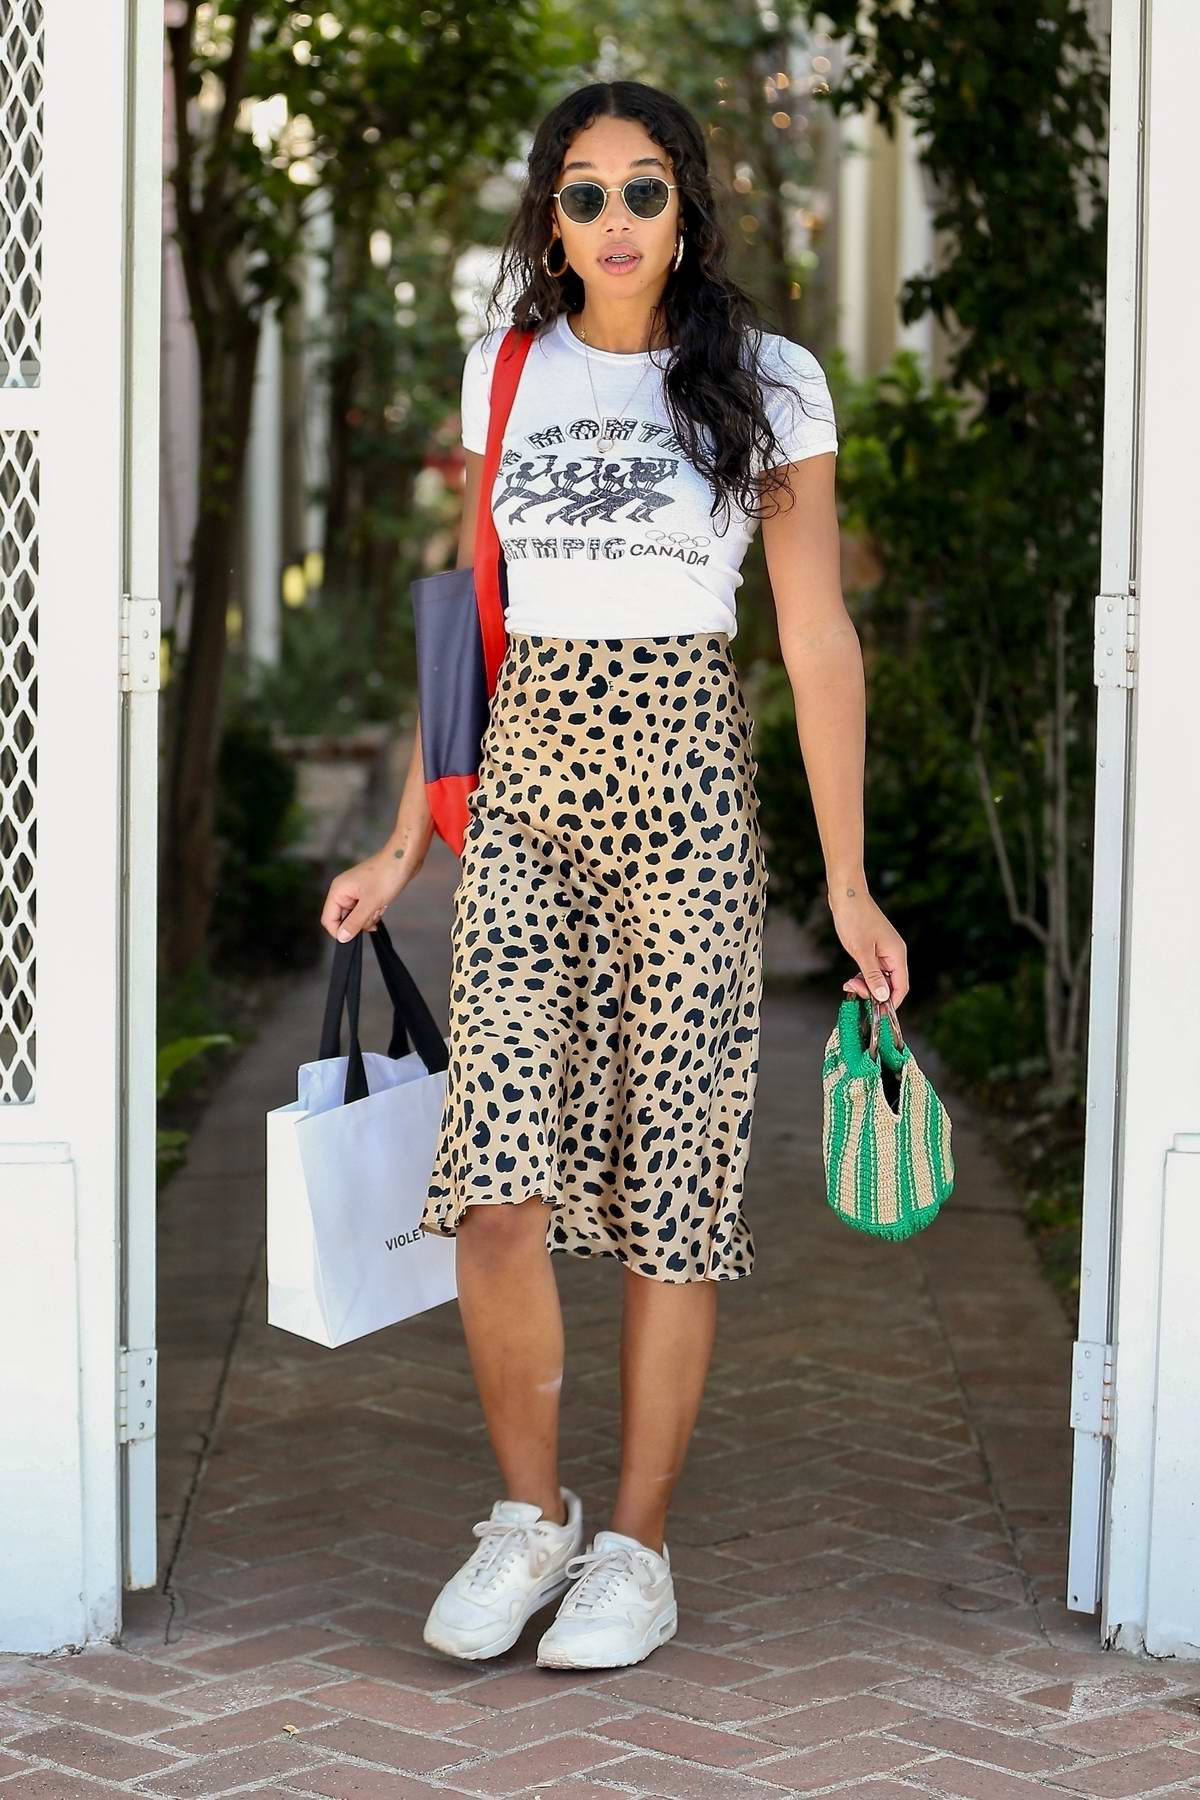 Laura Harrier steps out in a white top and leopard print skirt during a shopping outing in Los Angeles